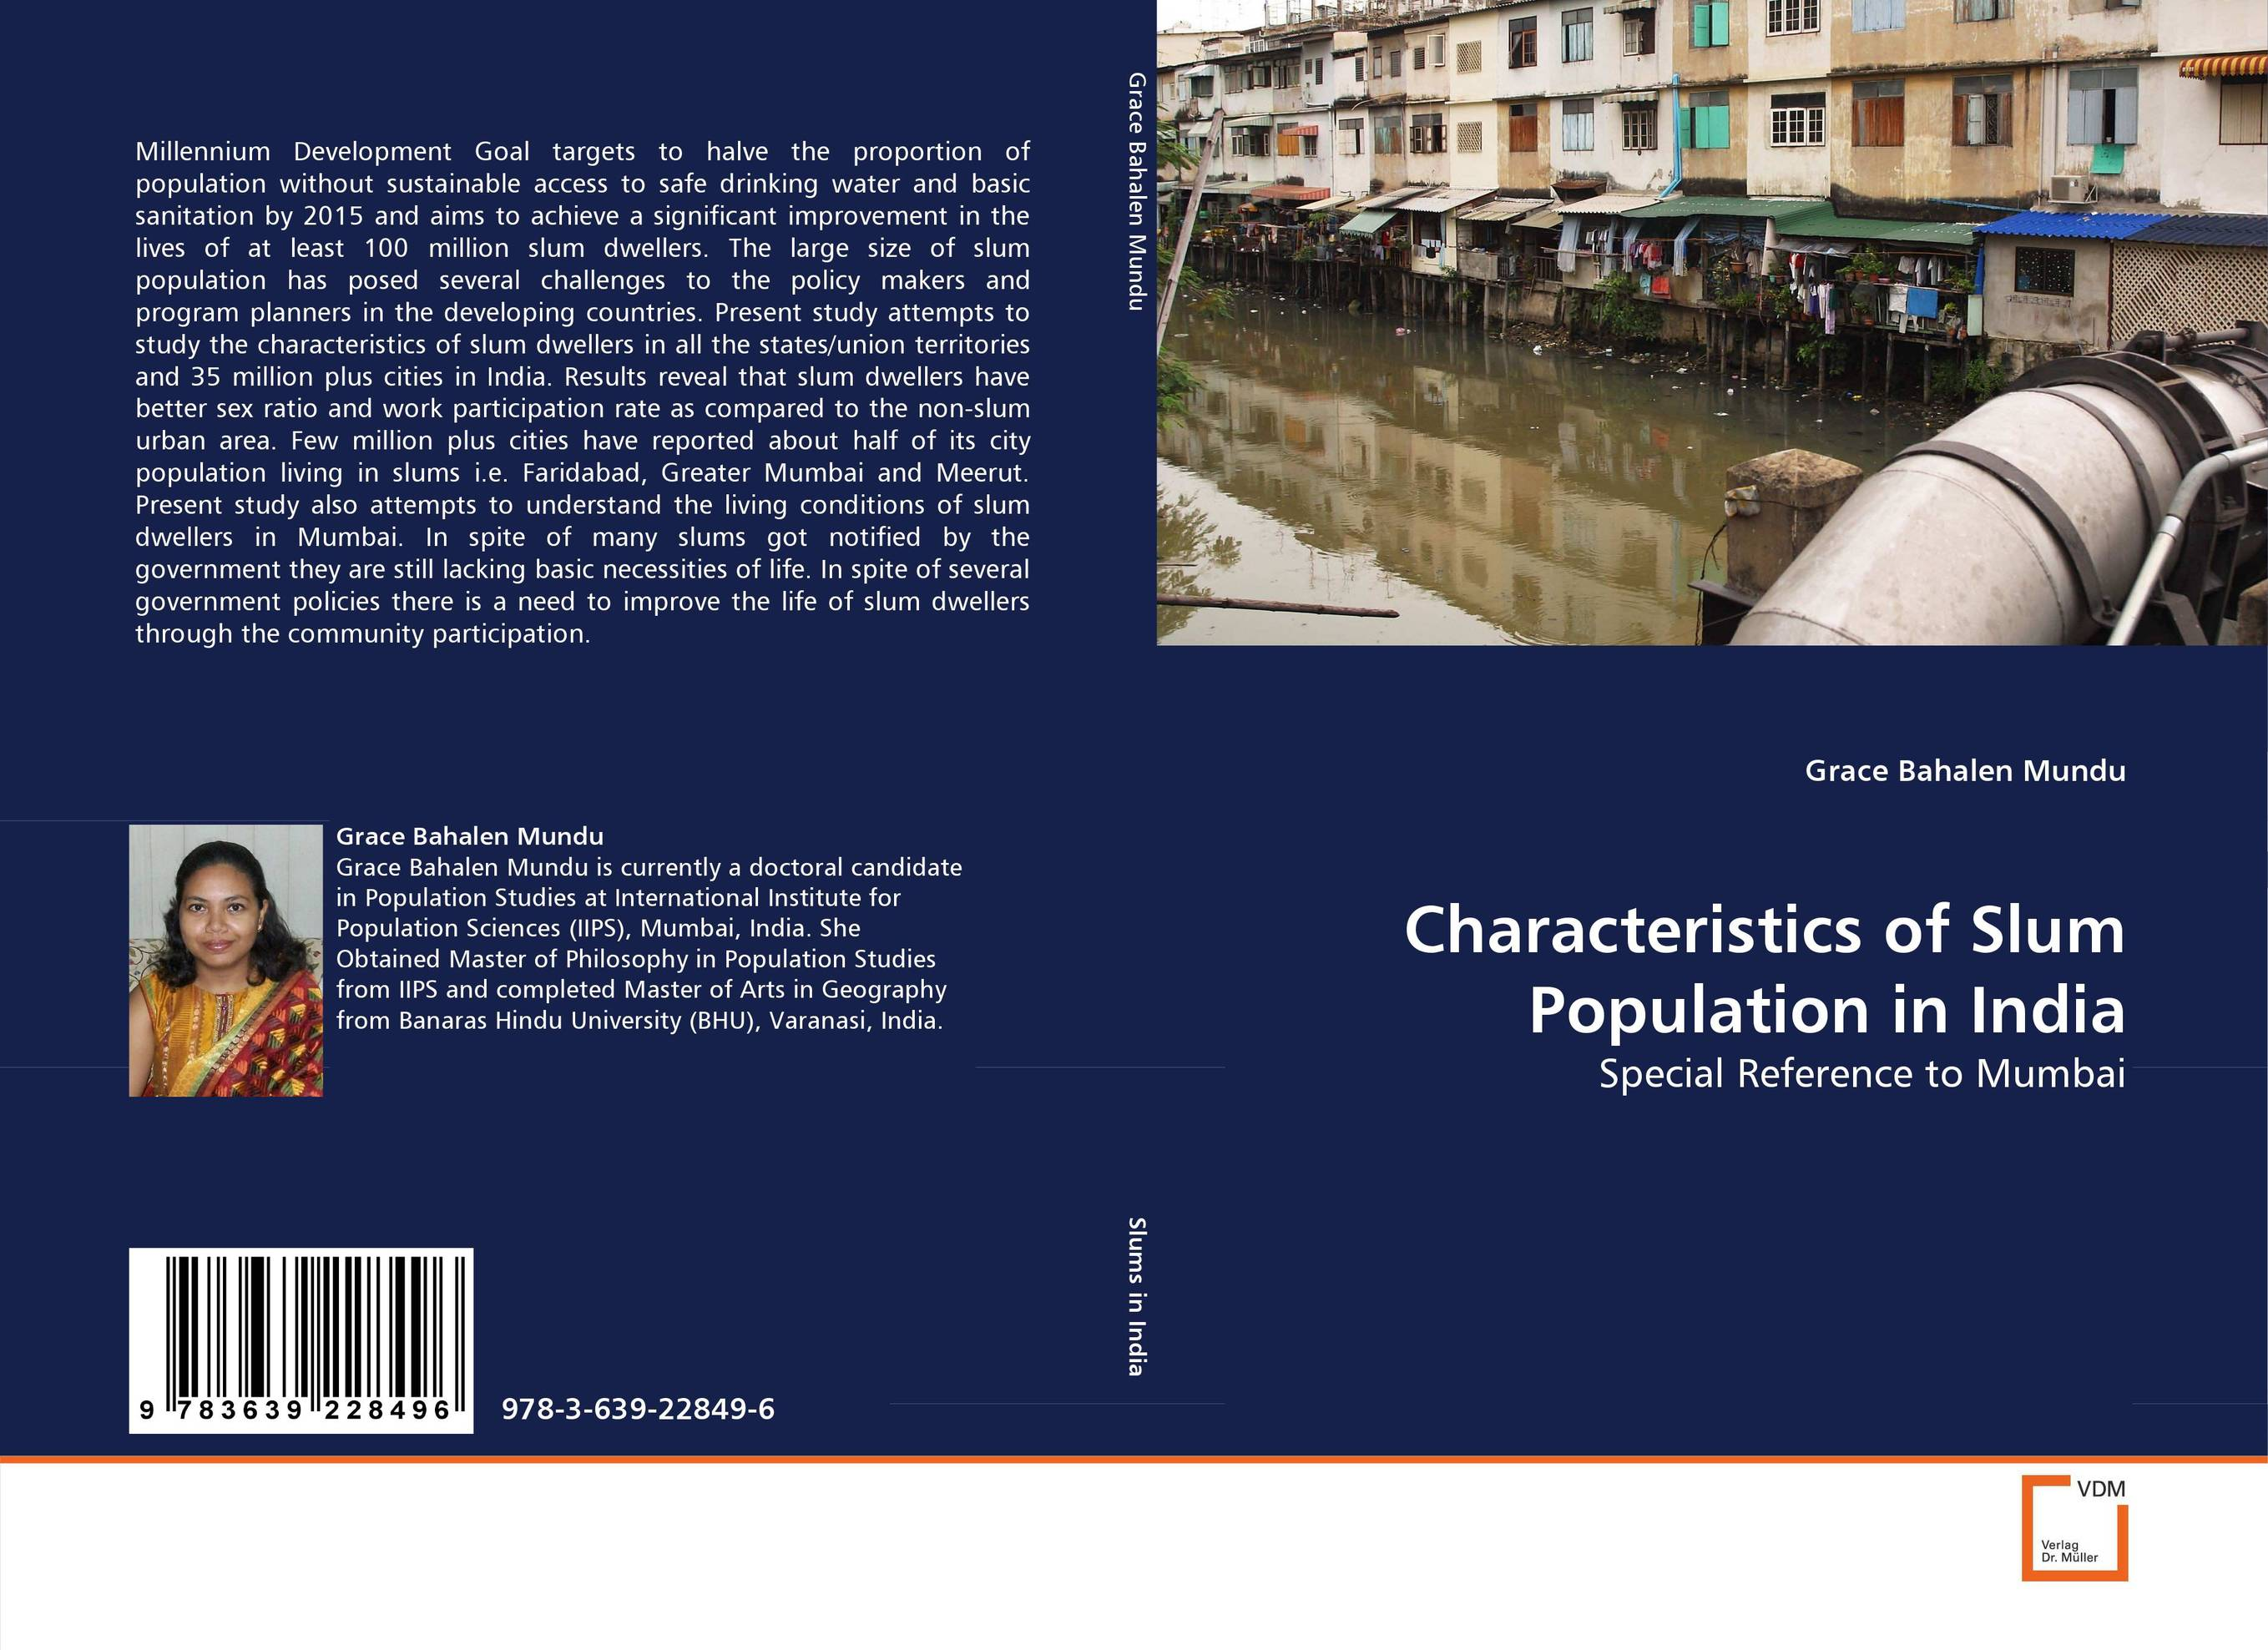 Characteristics of Slum Population in India slum upgrading and its contribution to environment sustainability